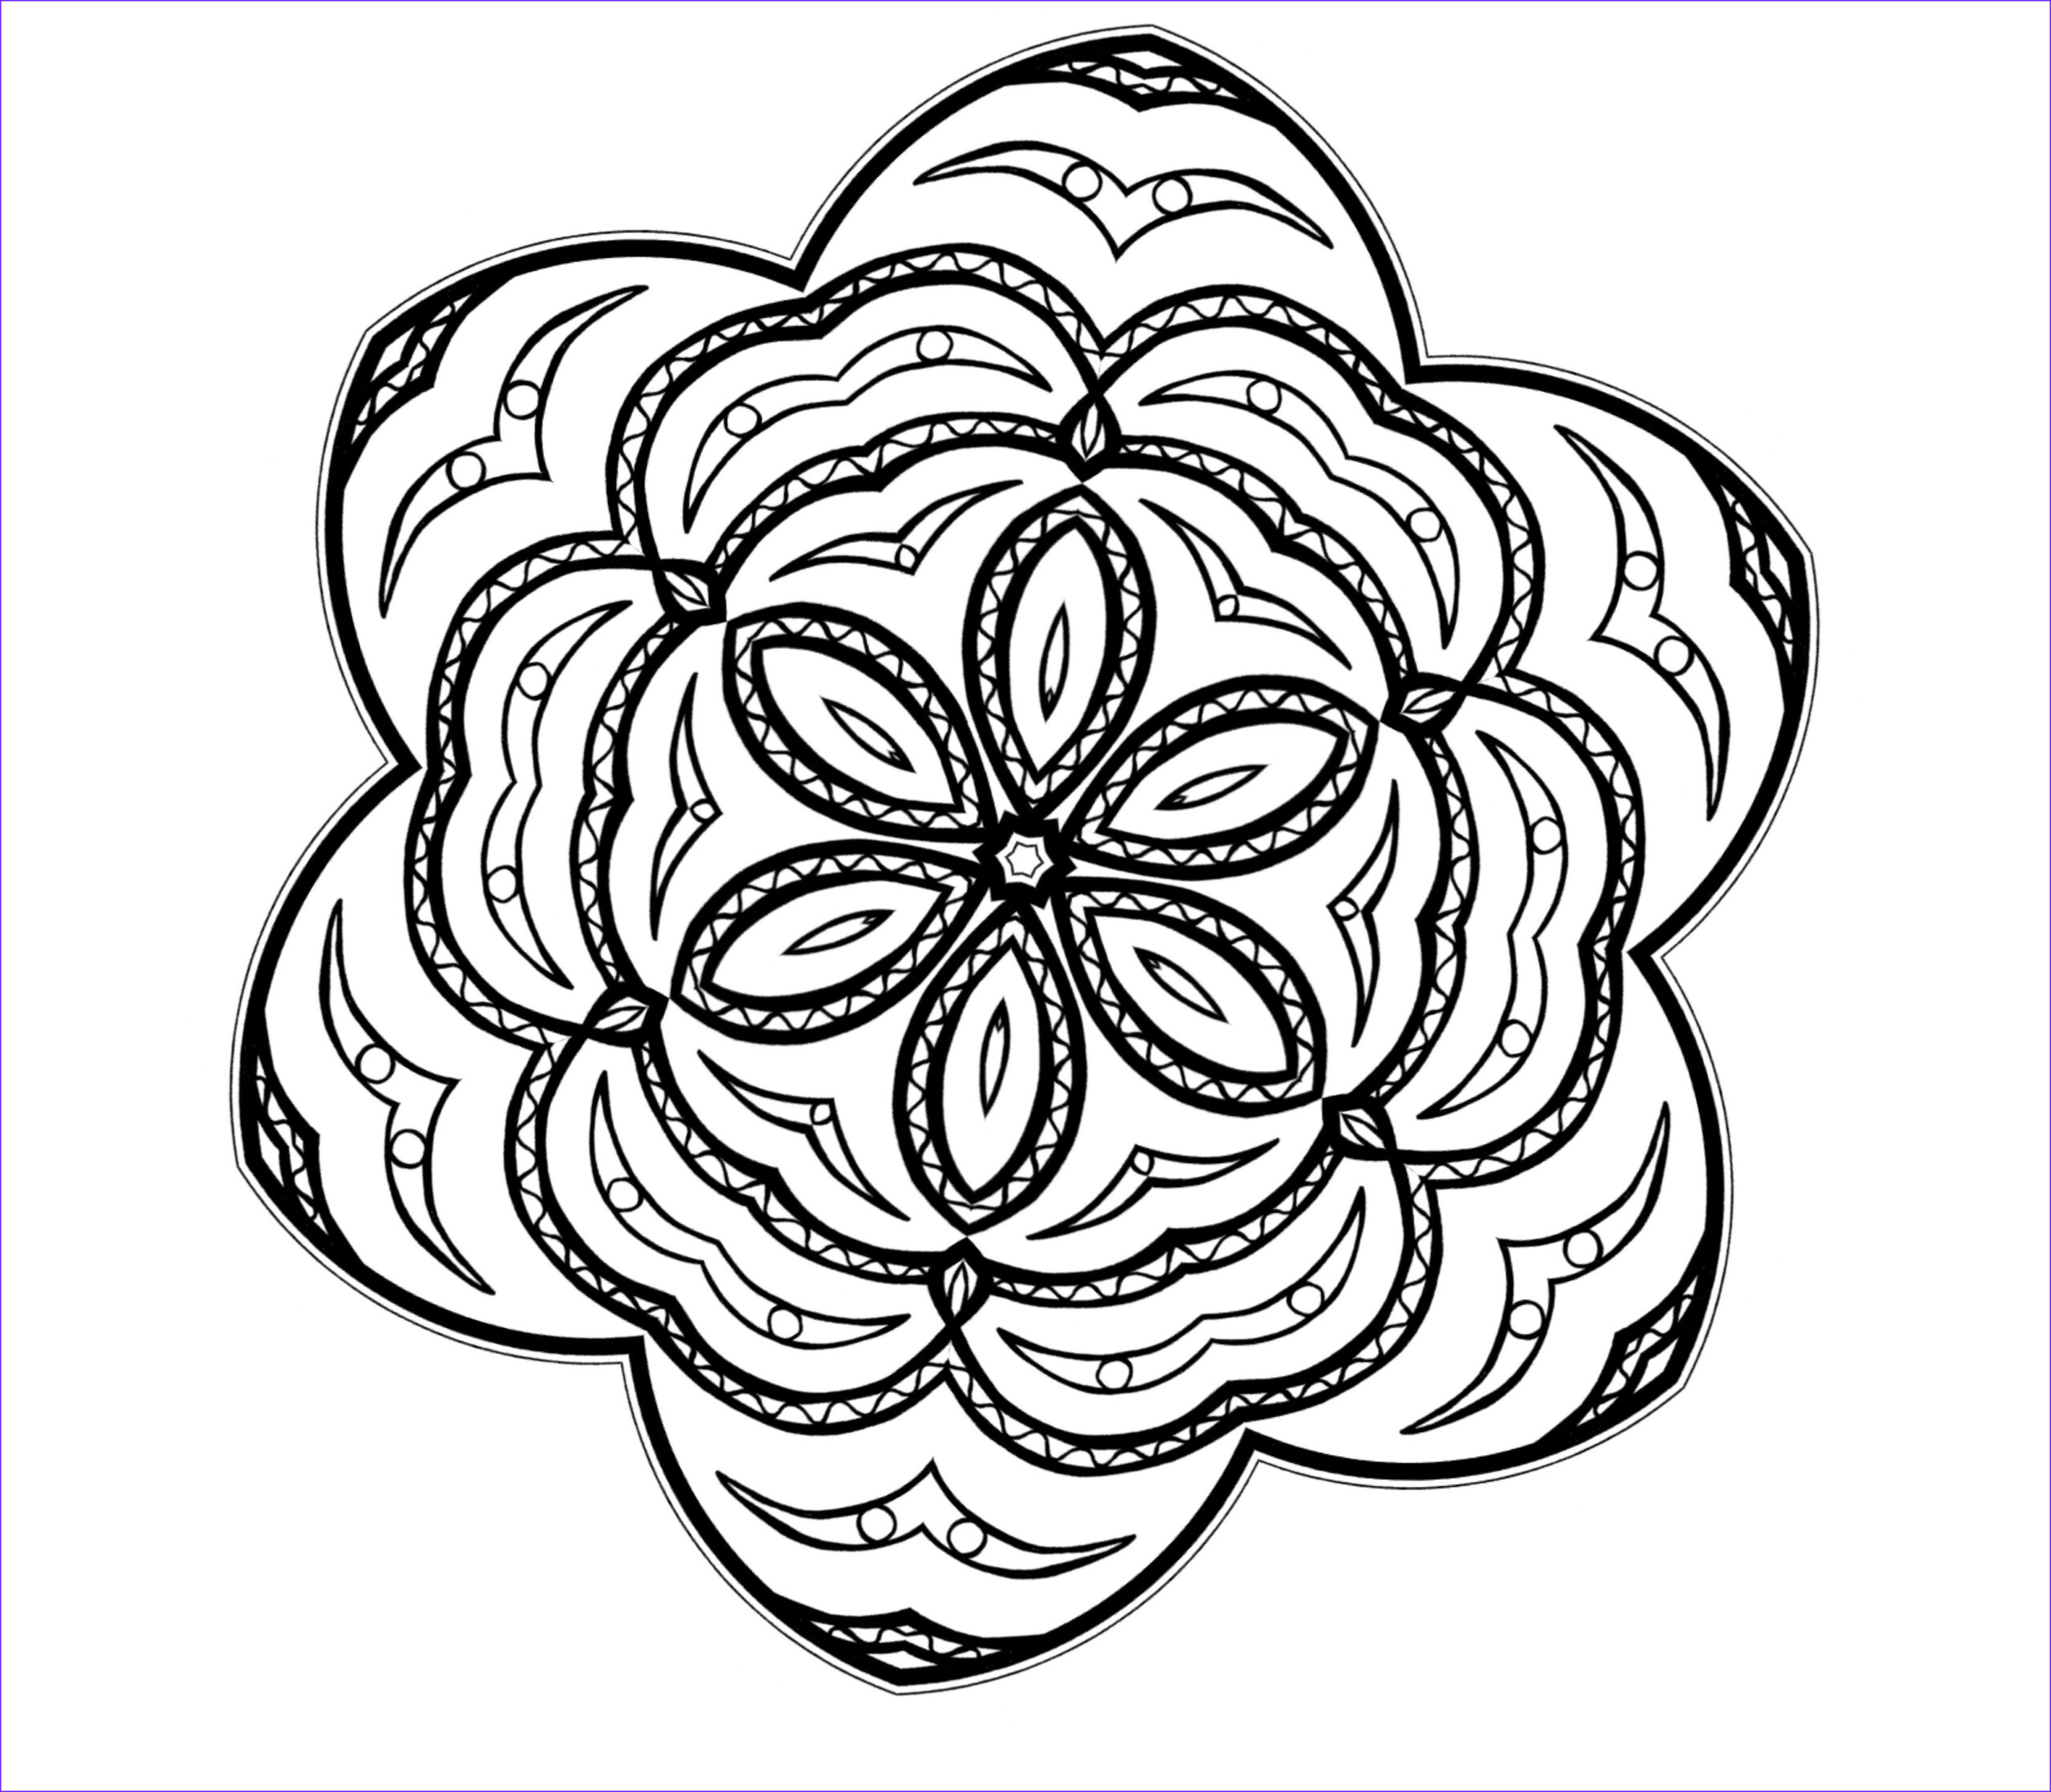 Printable Coloring Book Pages Unique Photos Free Printable Abstract Coloring Pages for Kids